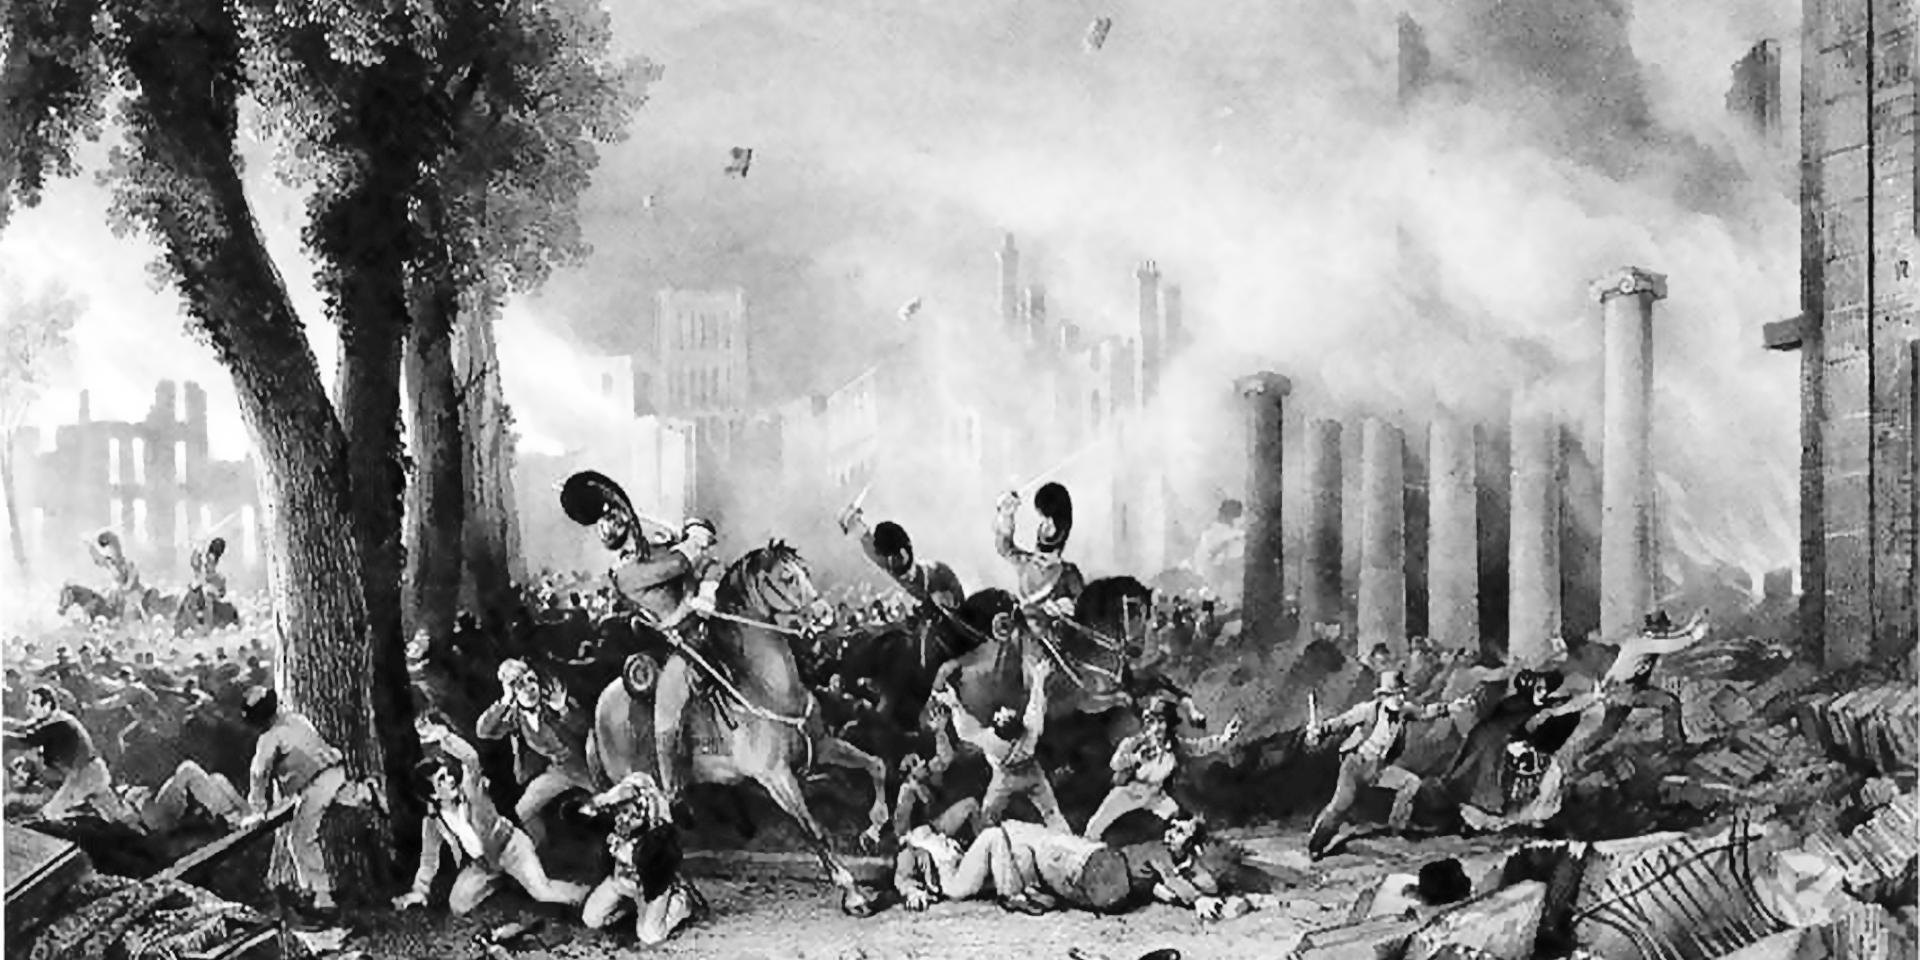 Charge of the 3rd Dragoon Guards on the rioters in Queen Square, Bristol, 1831